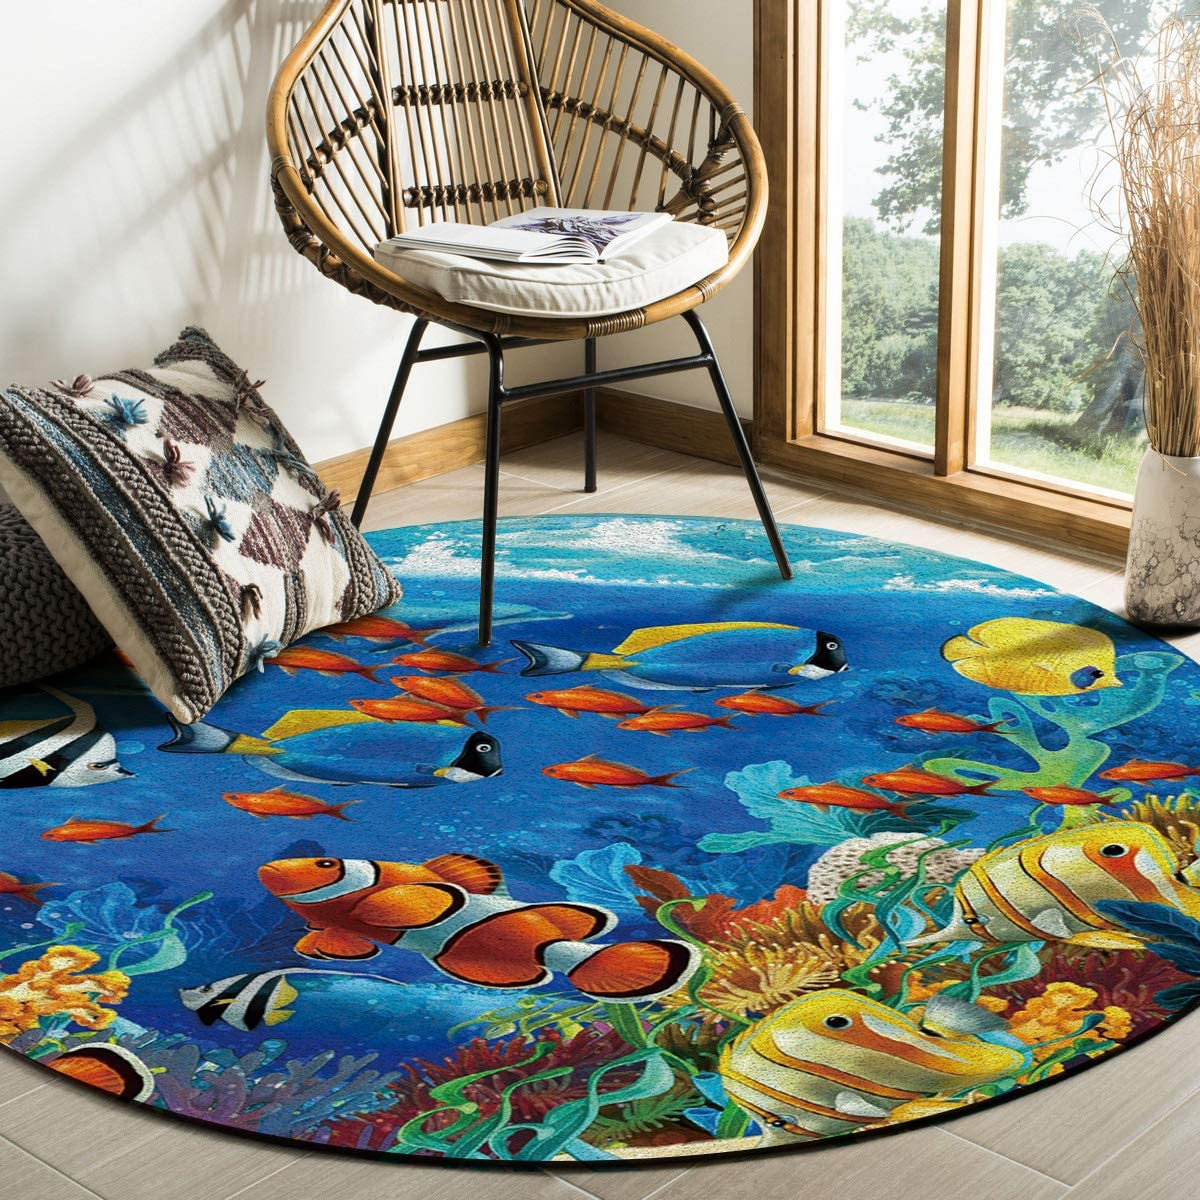 Ocean Theme Area Rug Round Max 53% OFF Rugs 3ft Recommendation Underwater C Sea World Fish